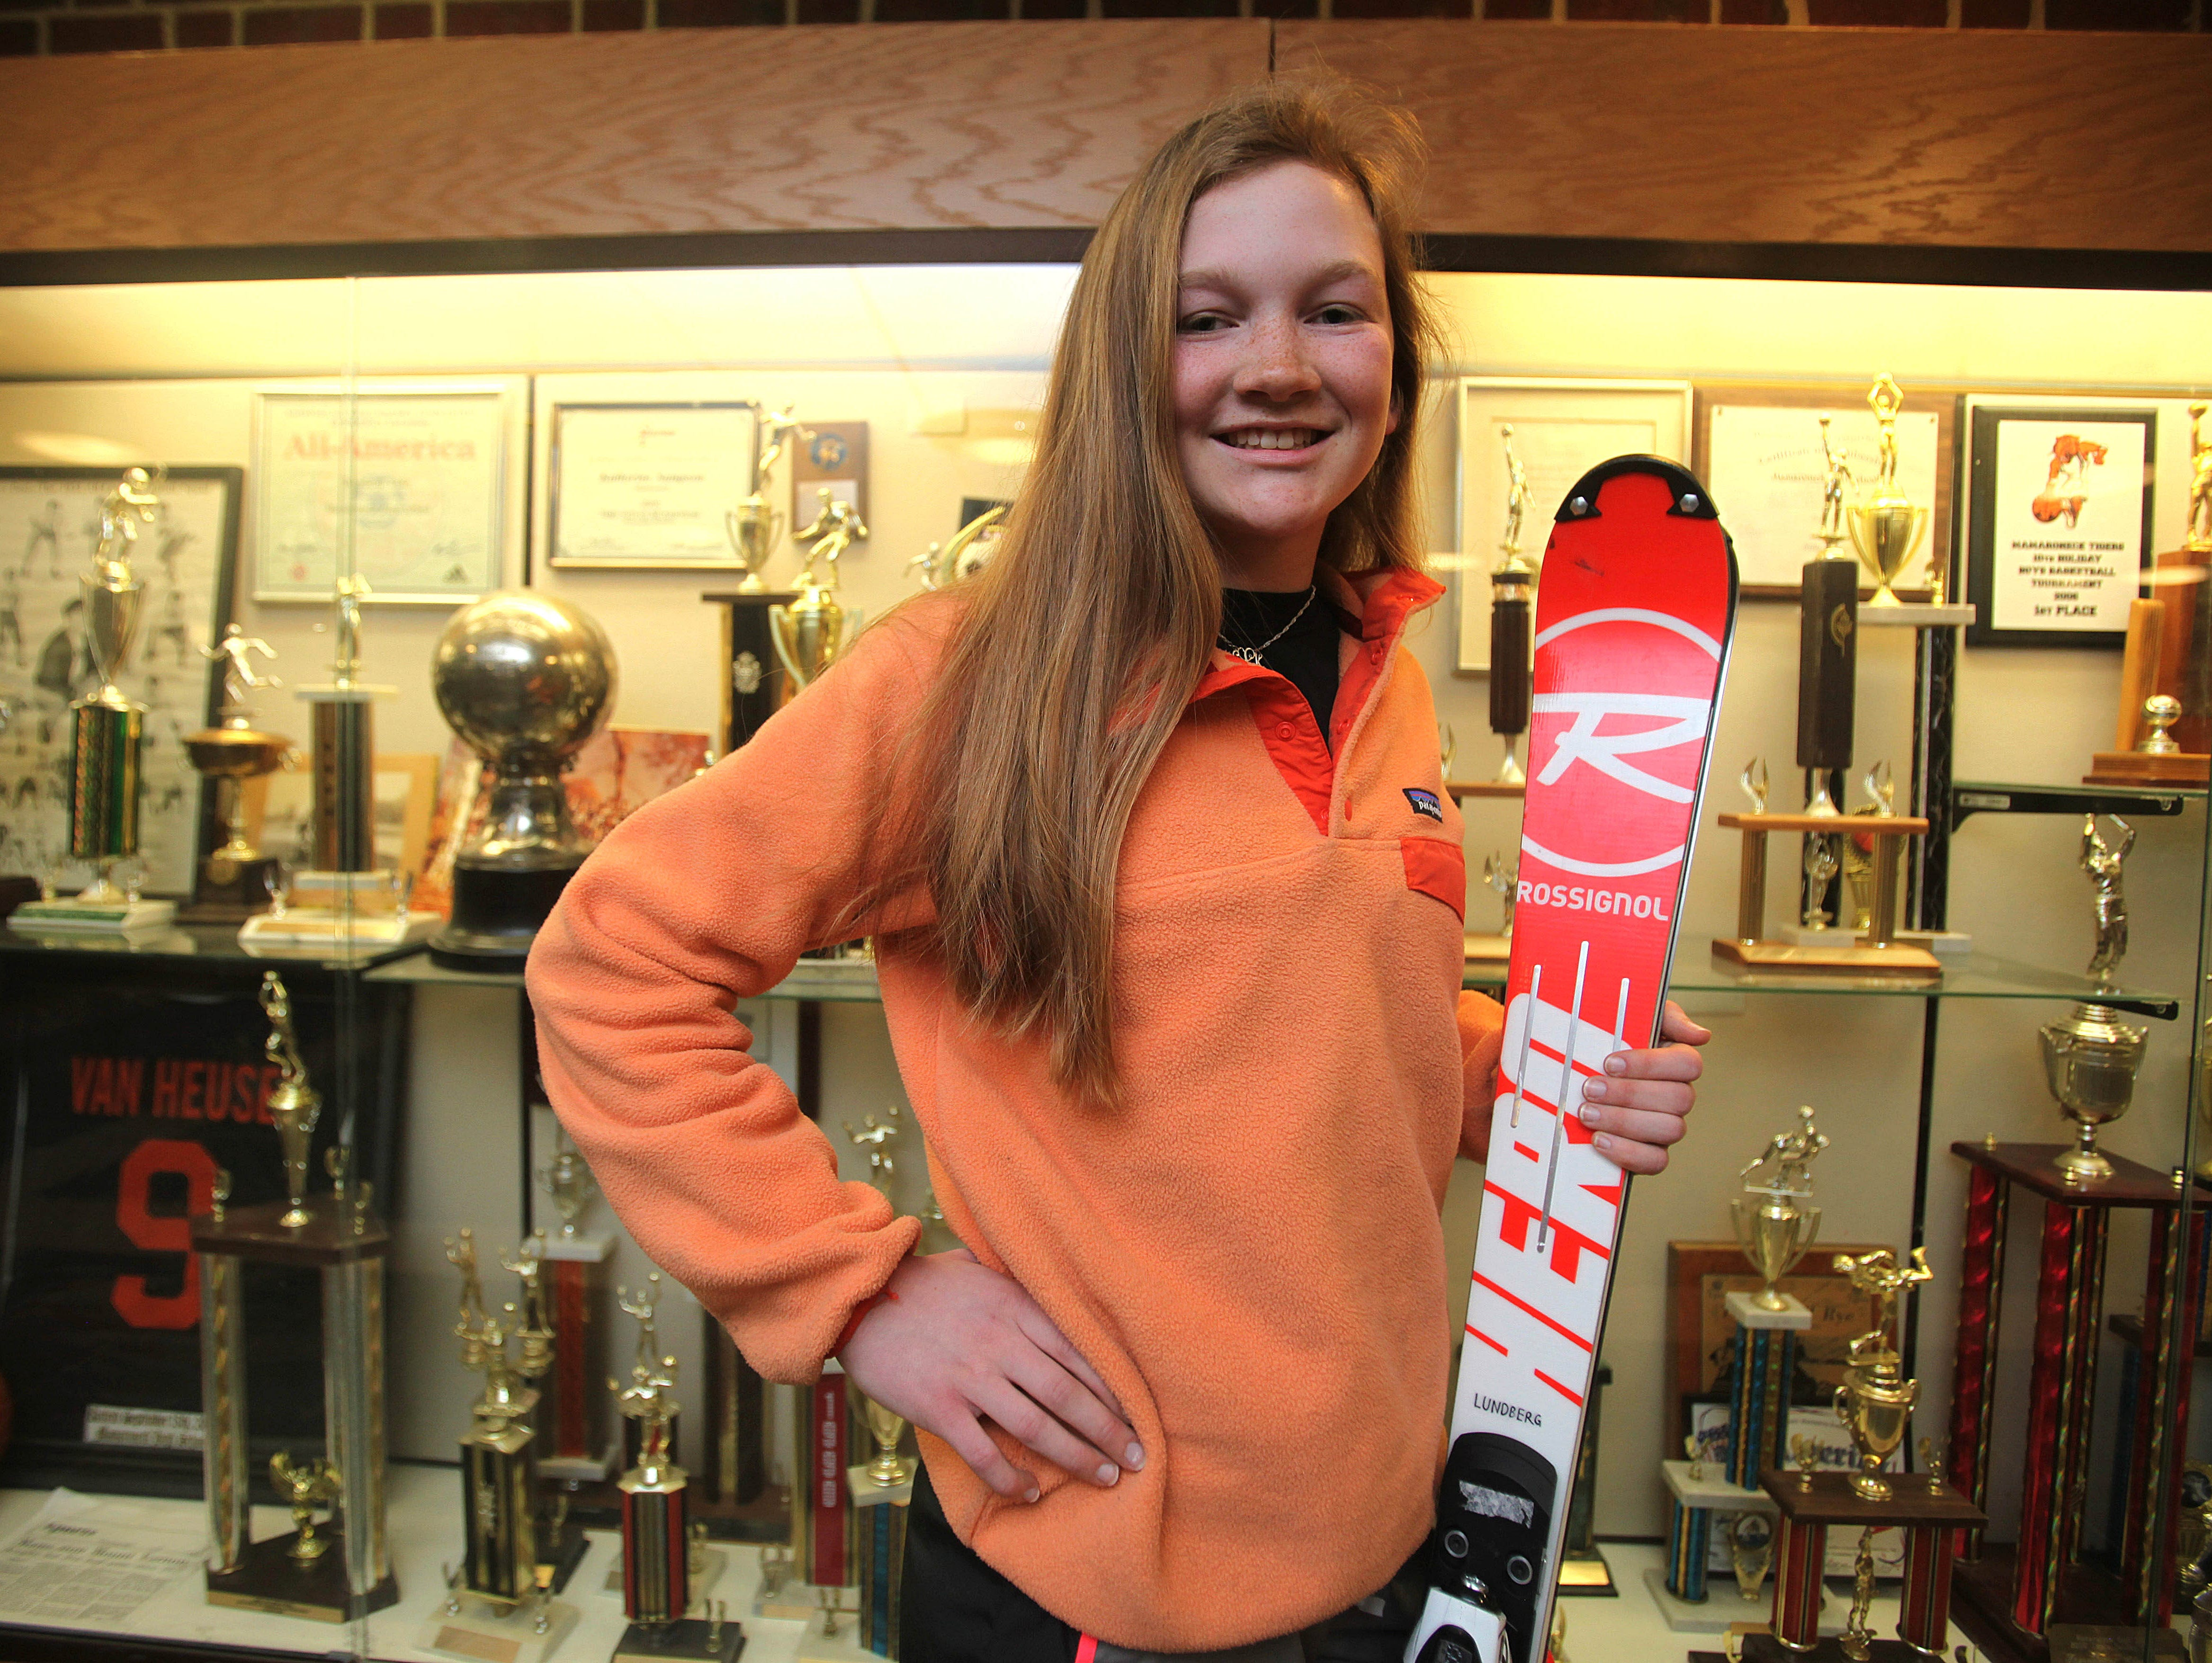 Eleanor Lundberg placed at the New York State Skiing Championship. March 17, 2016.